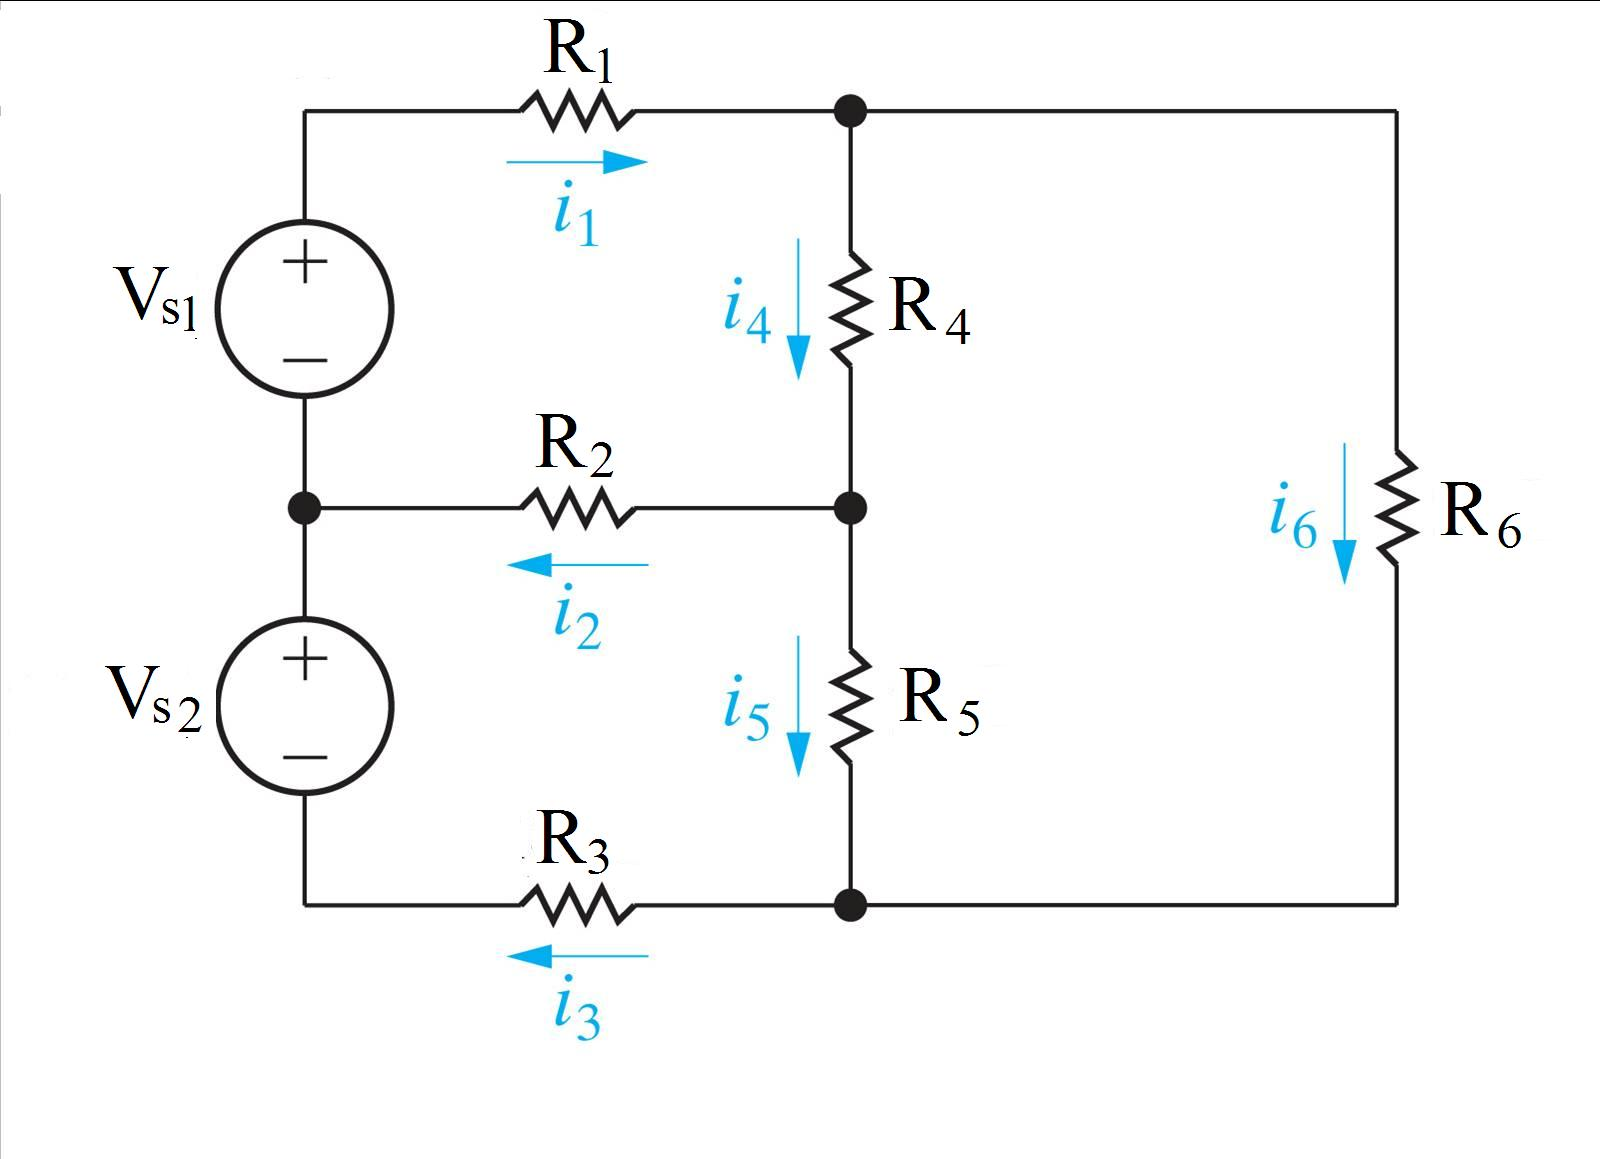 In the circuit, Vs1 is 122 V, Vs2 is 126 V, R1 is